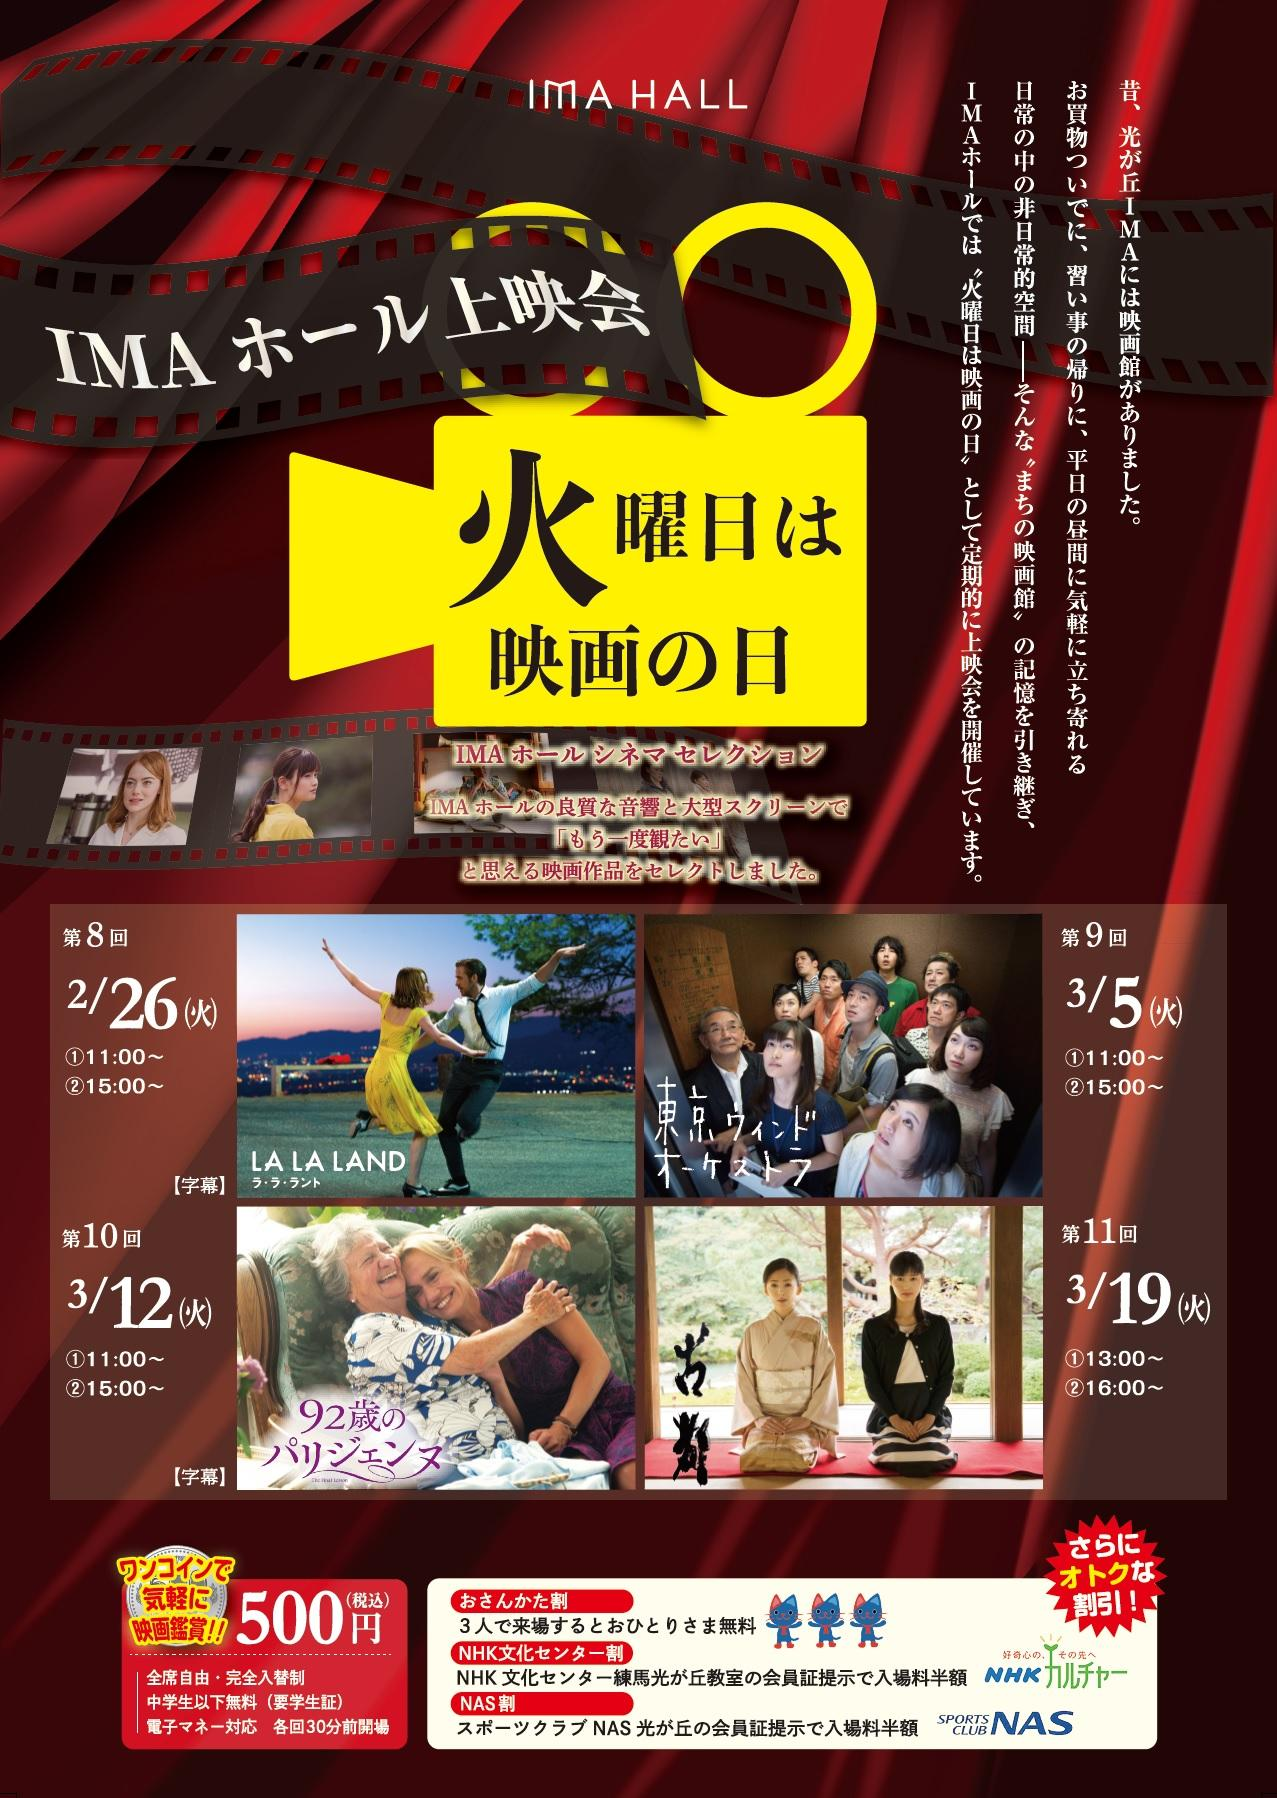 IMA hall screening society - Tuesday is ... on day of movie